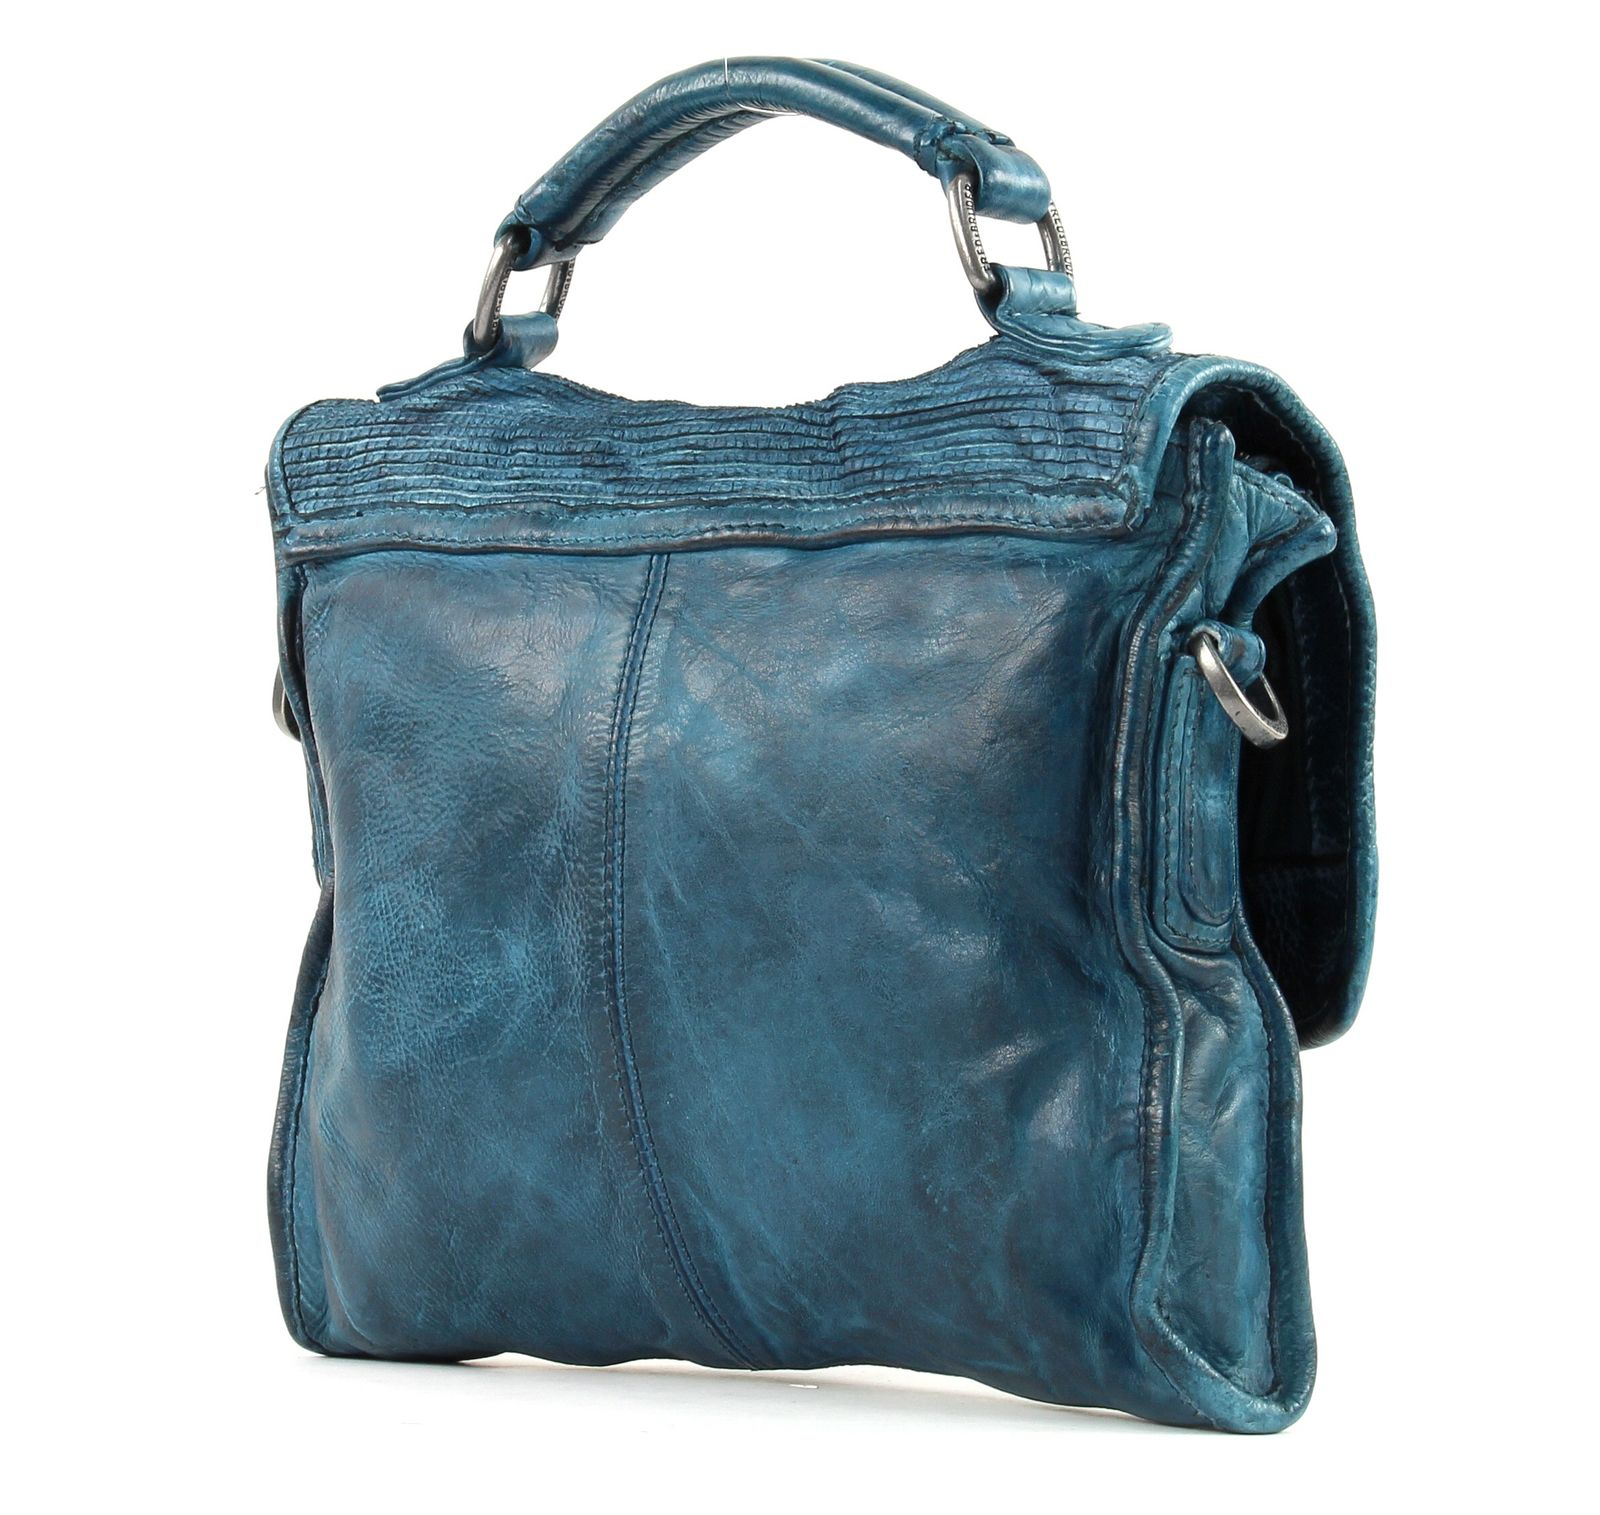 fredsbruder epic mini handtasche umh ngetasche tasche blue petrol blau neu ebay. Black Bedroom Furniture Sets. Home Design Ideas